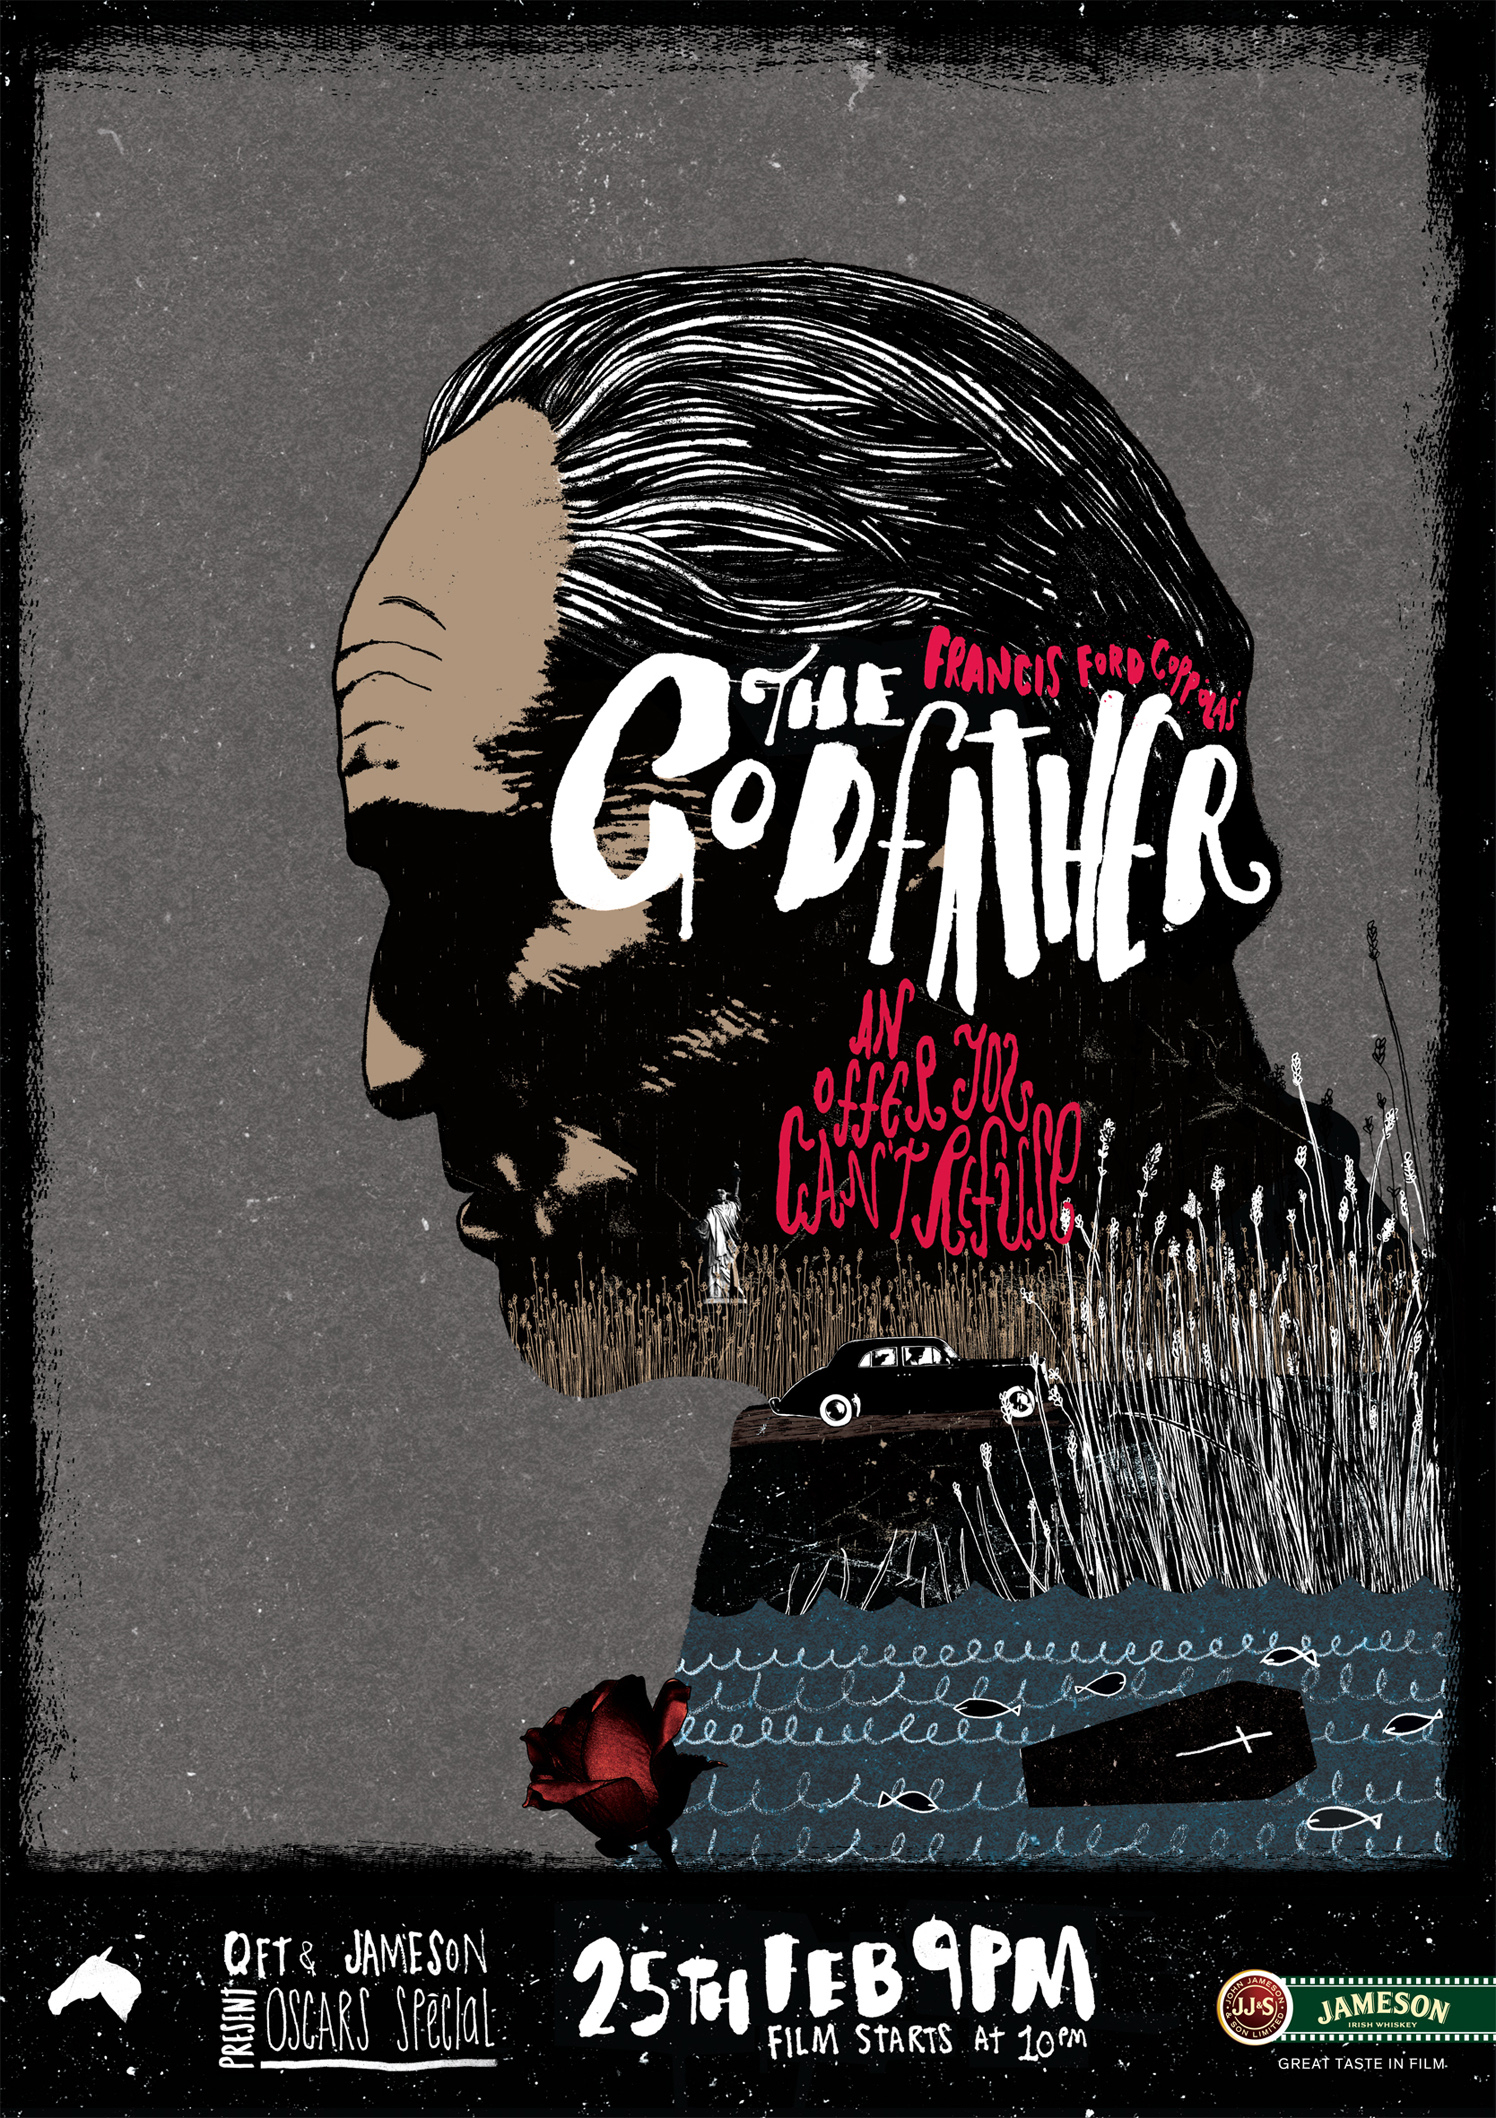 The Godfather Jameson's Poster